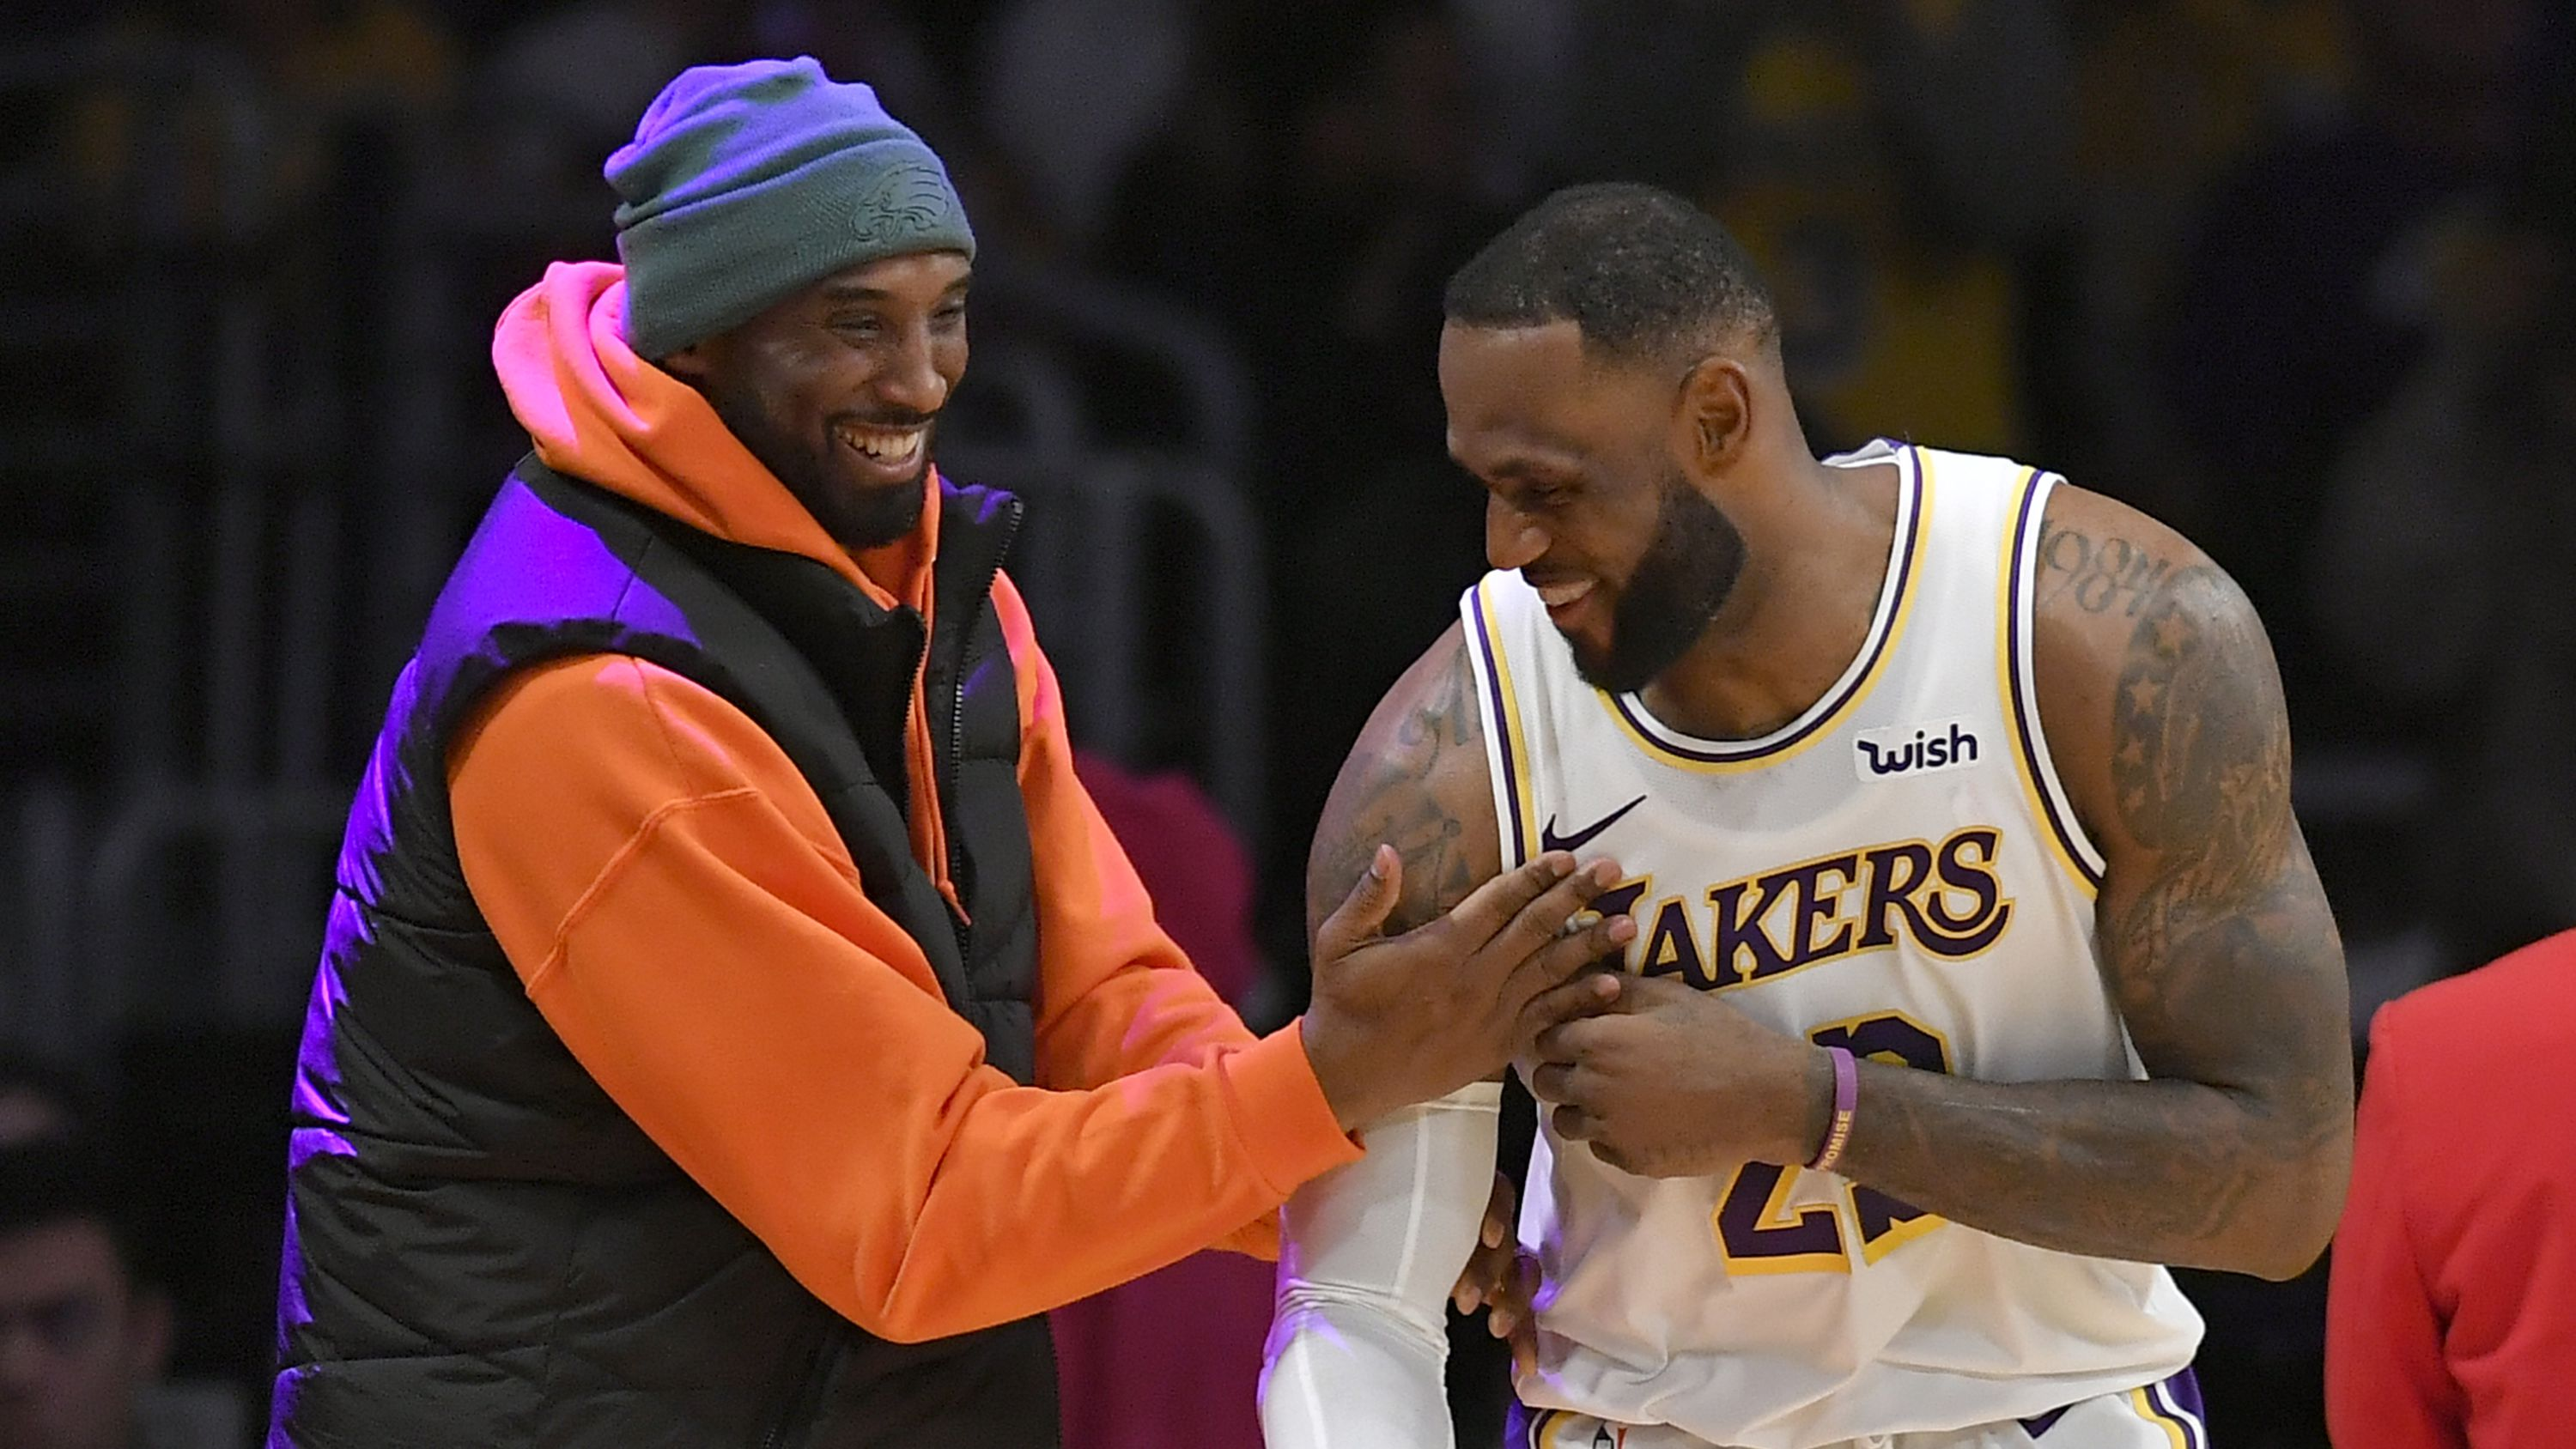 LeBron James of the Los Angeles Lakers has a moment on the sideline with former Laker Kobe Bryant.